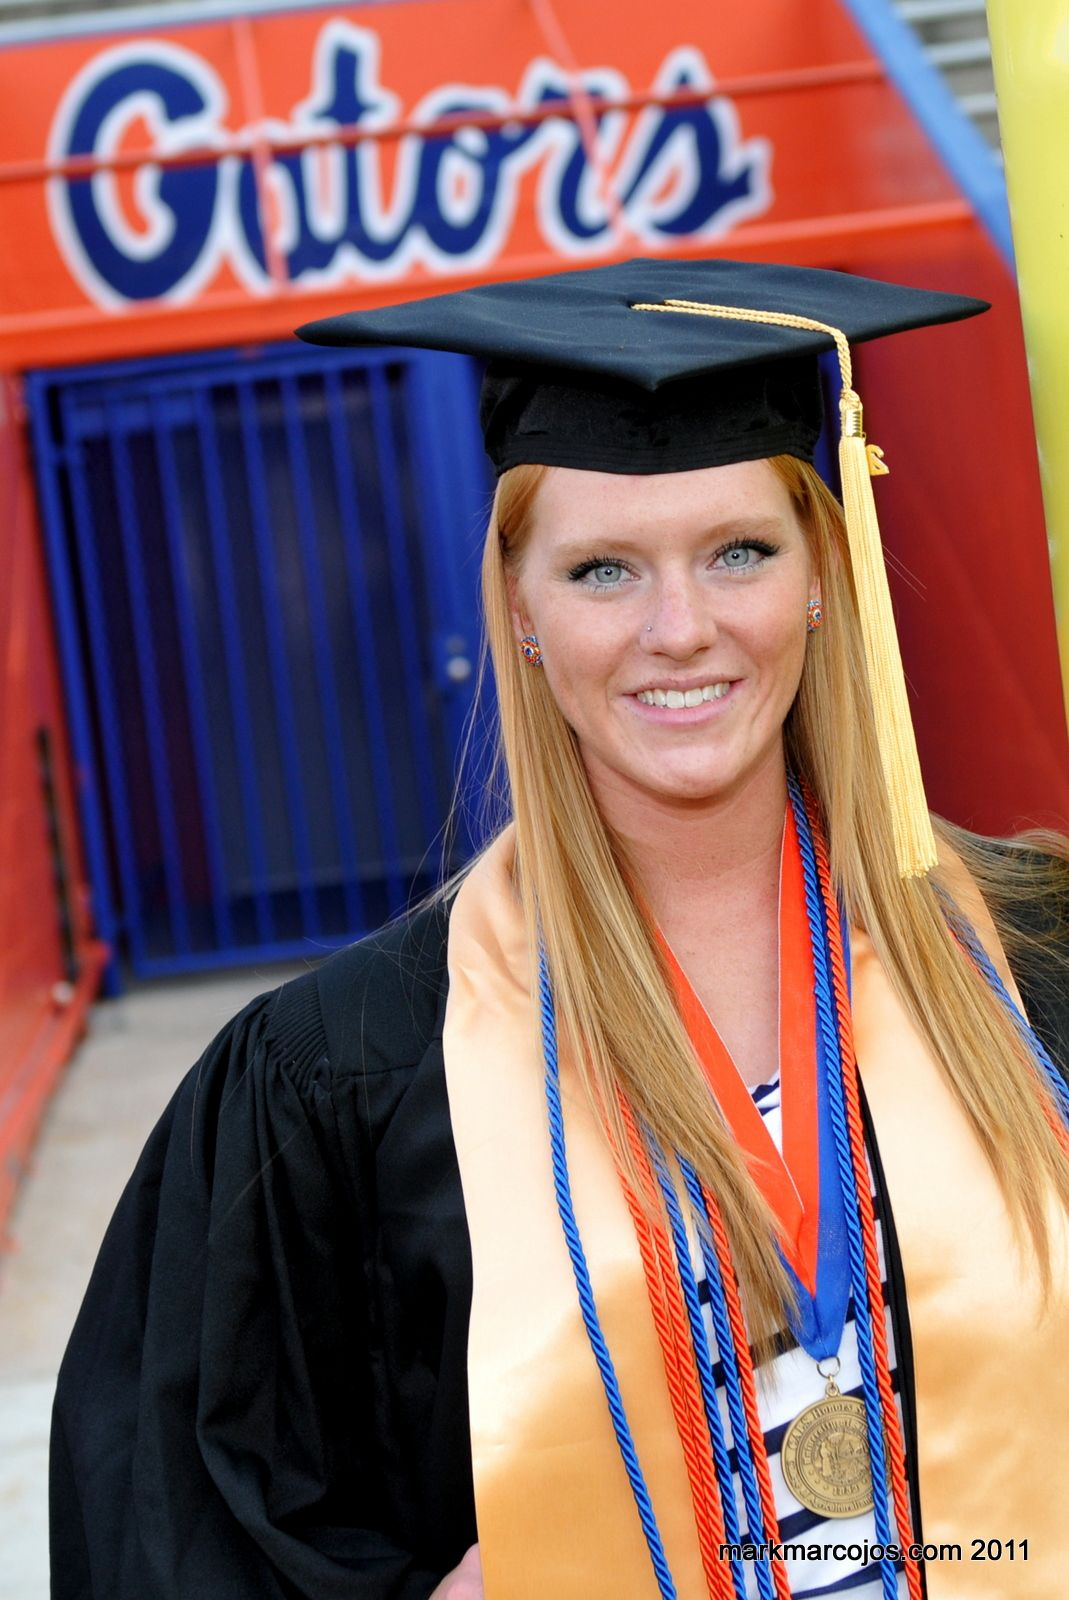 uf graduation poses | Congratulations on your amazing double major ...